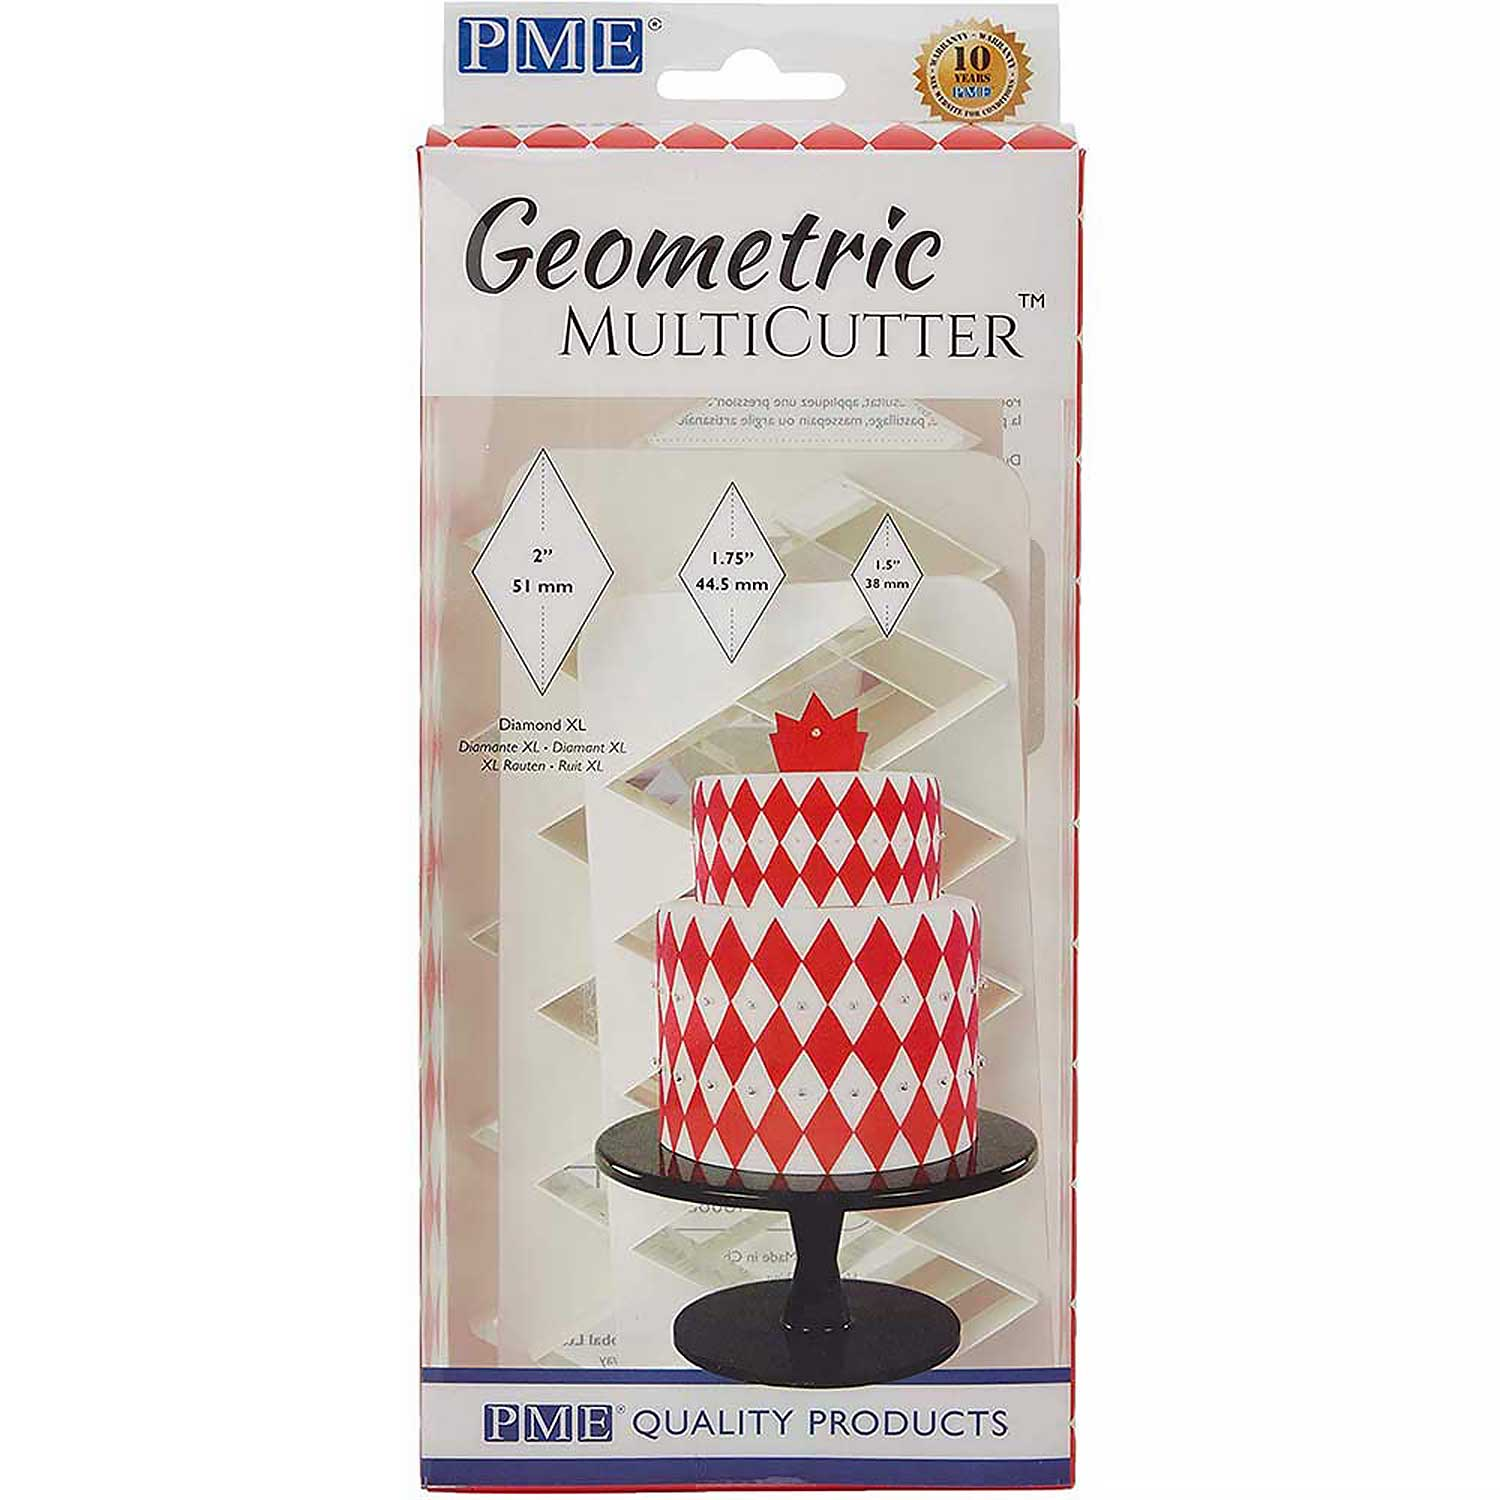 Diamond XL Geometric Multicutter™ Set